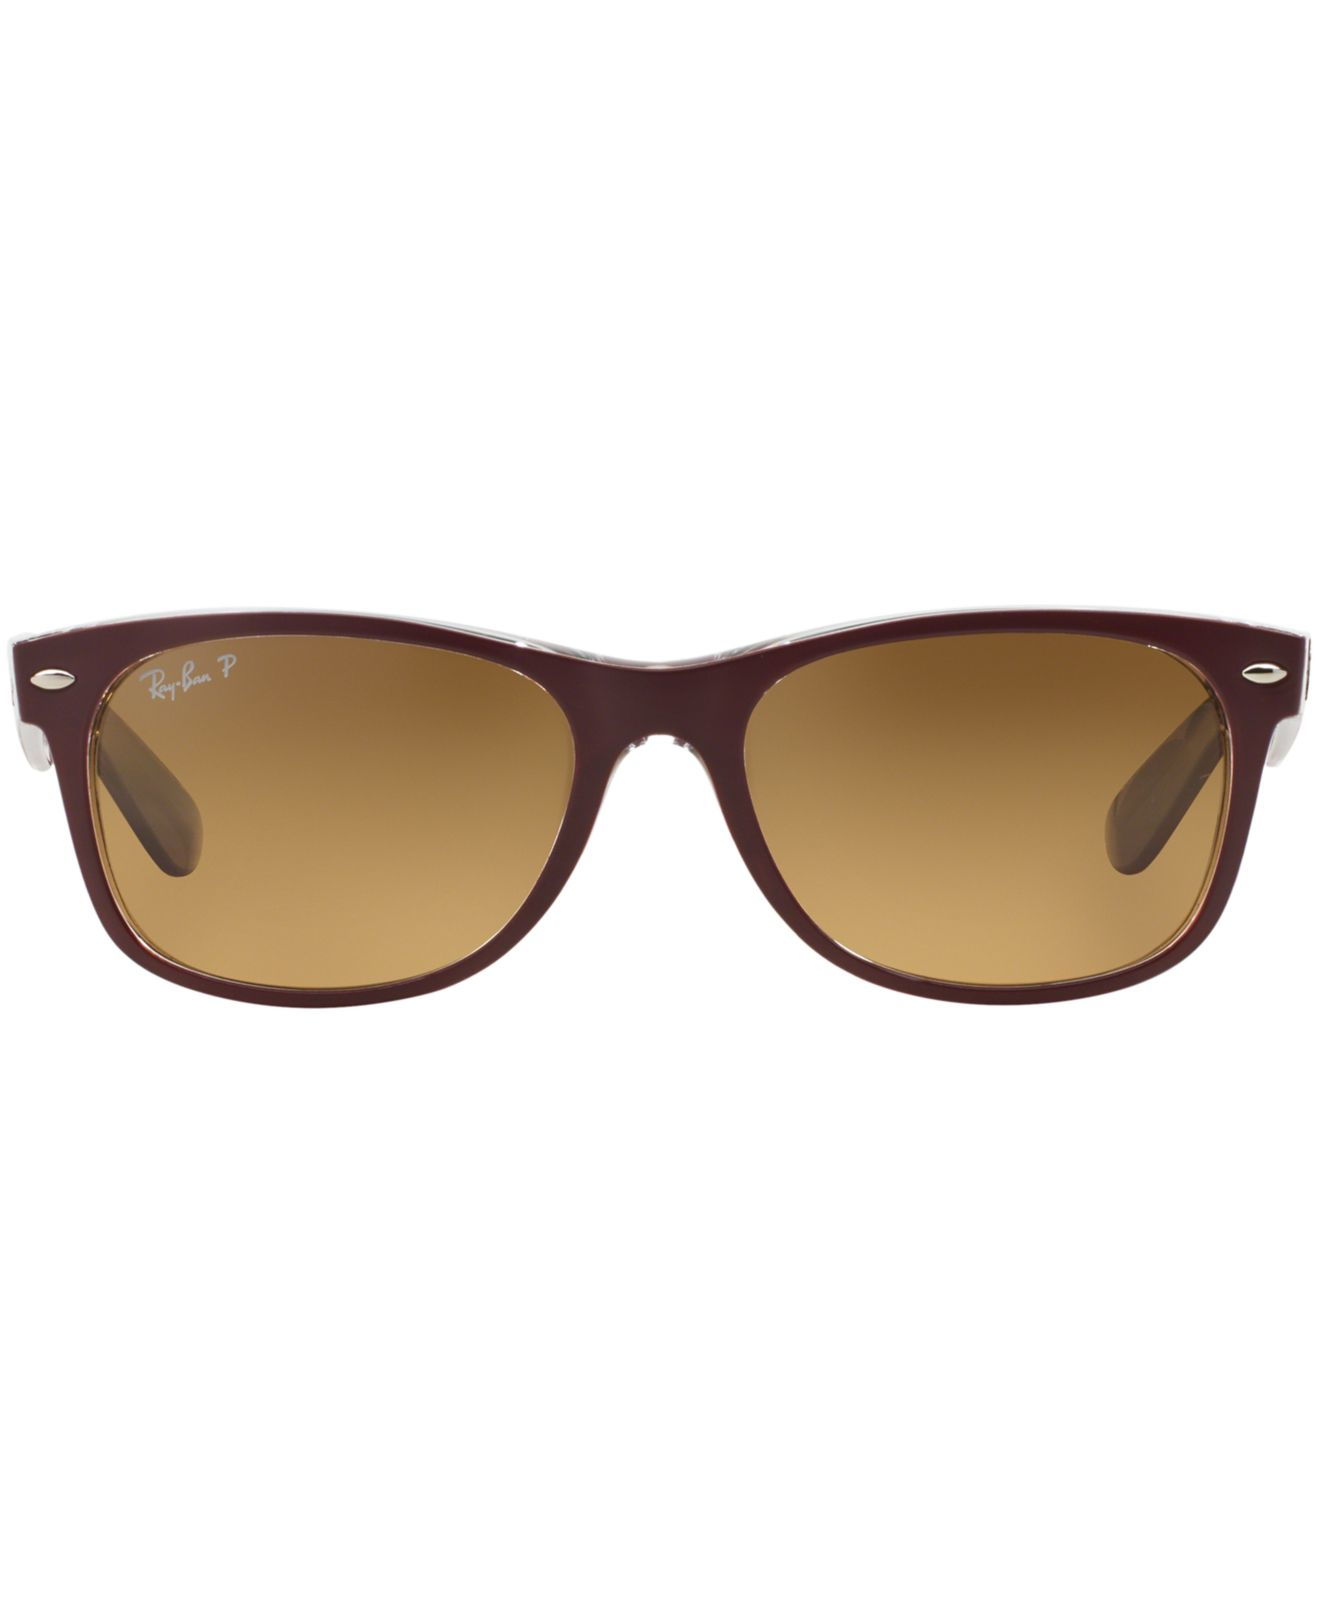 ab8be9b836 Clear Ray Ban Frames Wayfair Products « Heritage Malta